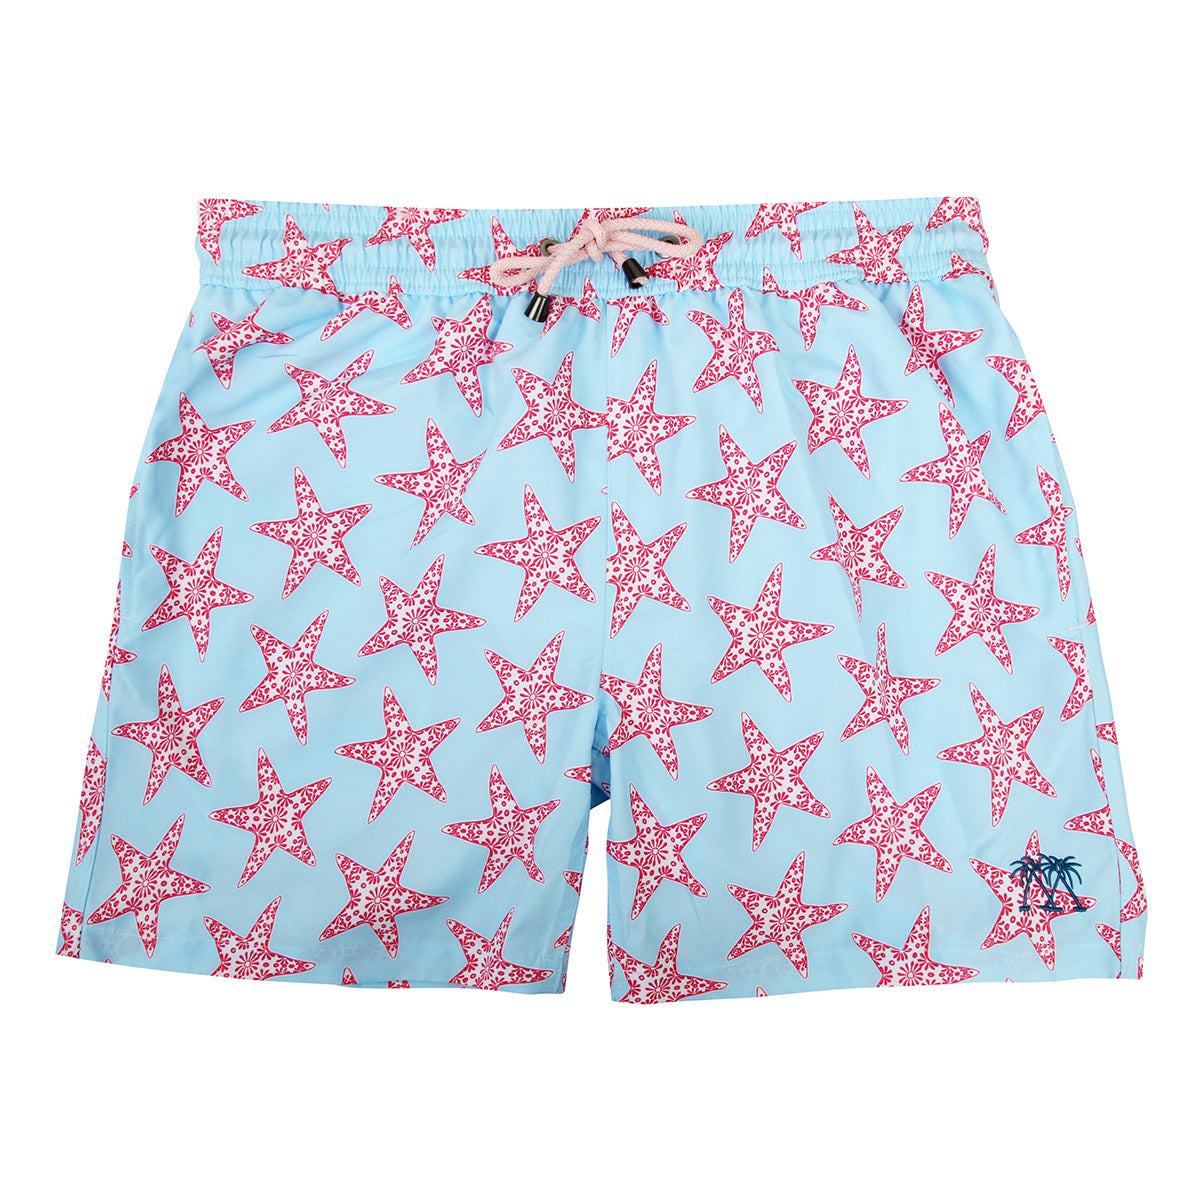 5a8797bd107ed Mens swim trunks   SEASTAR - CORAL TURQUOISE - Pink House Mustique